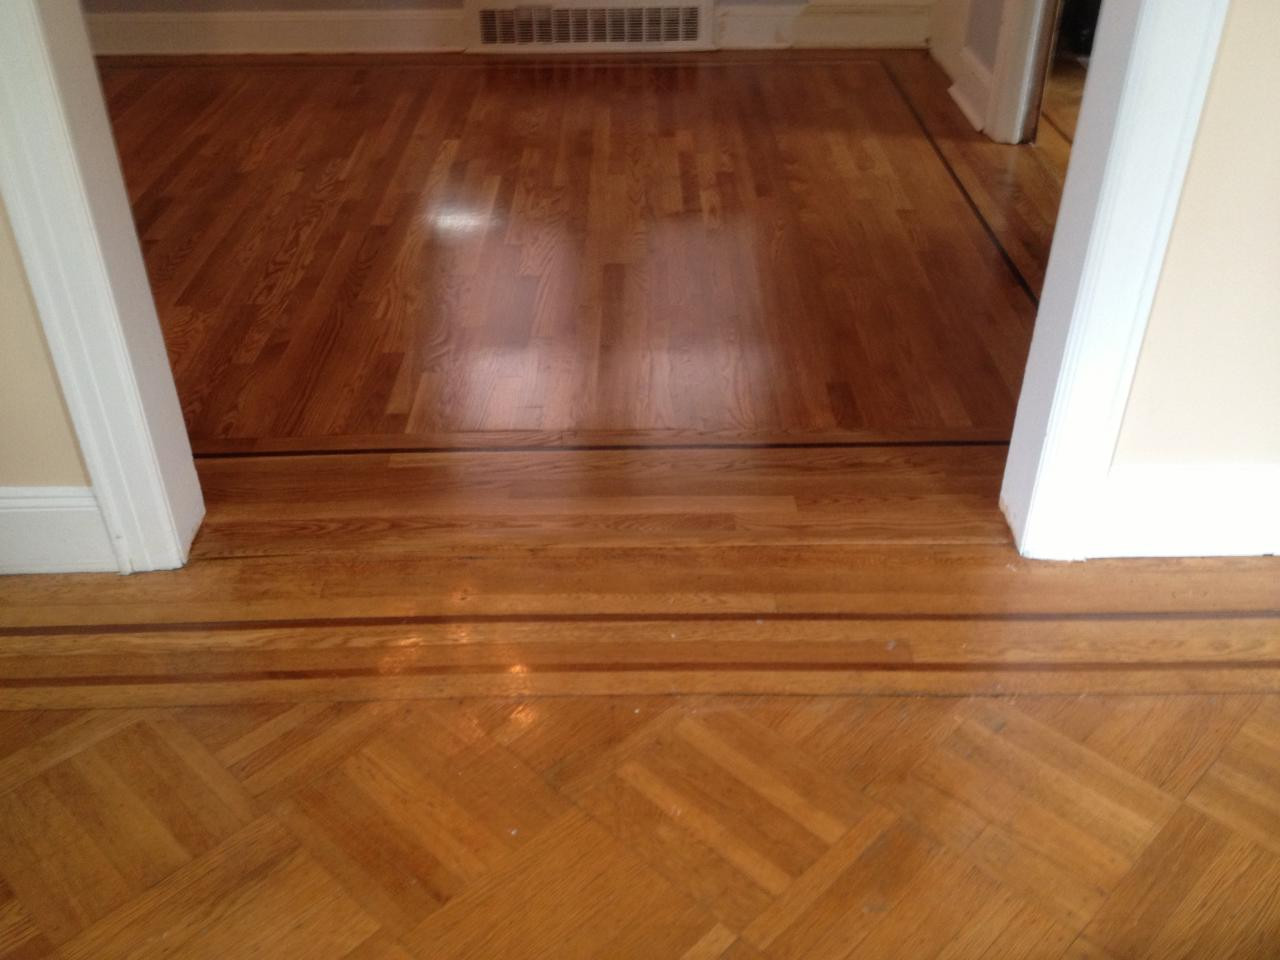 hardwood floor refinishing danbury ct of floor refinishing long island callahan brothers floors inc pertaining to mike callahan and his crew arrived right at the scheduled time they worked well as a team and began prepping immediately they installed plastic sheeting